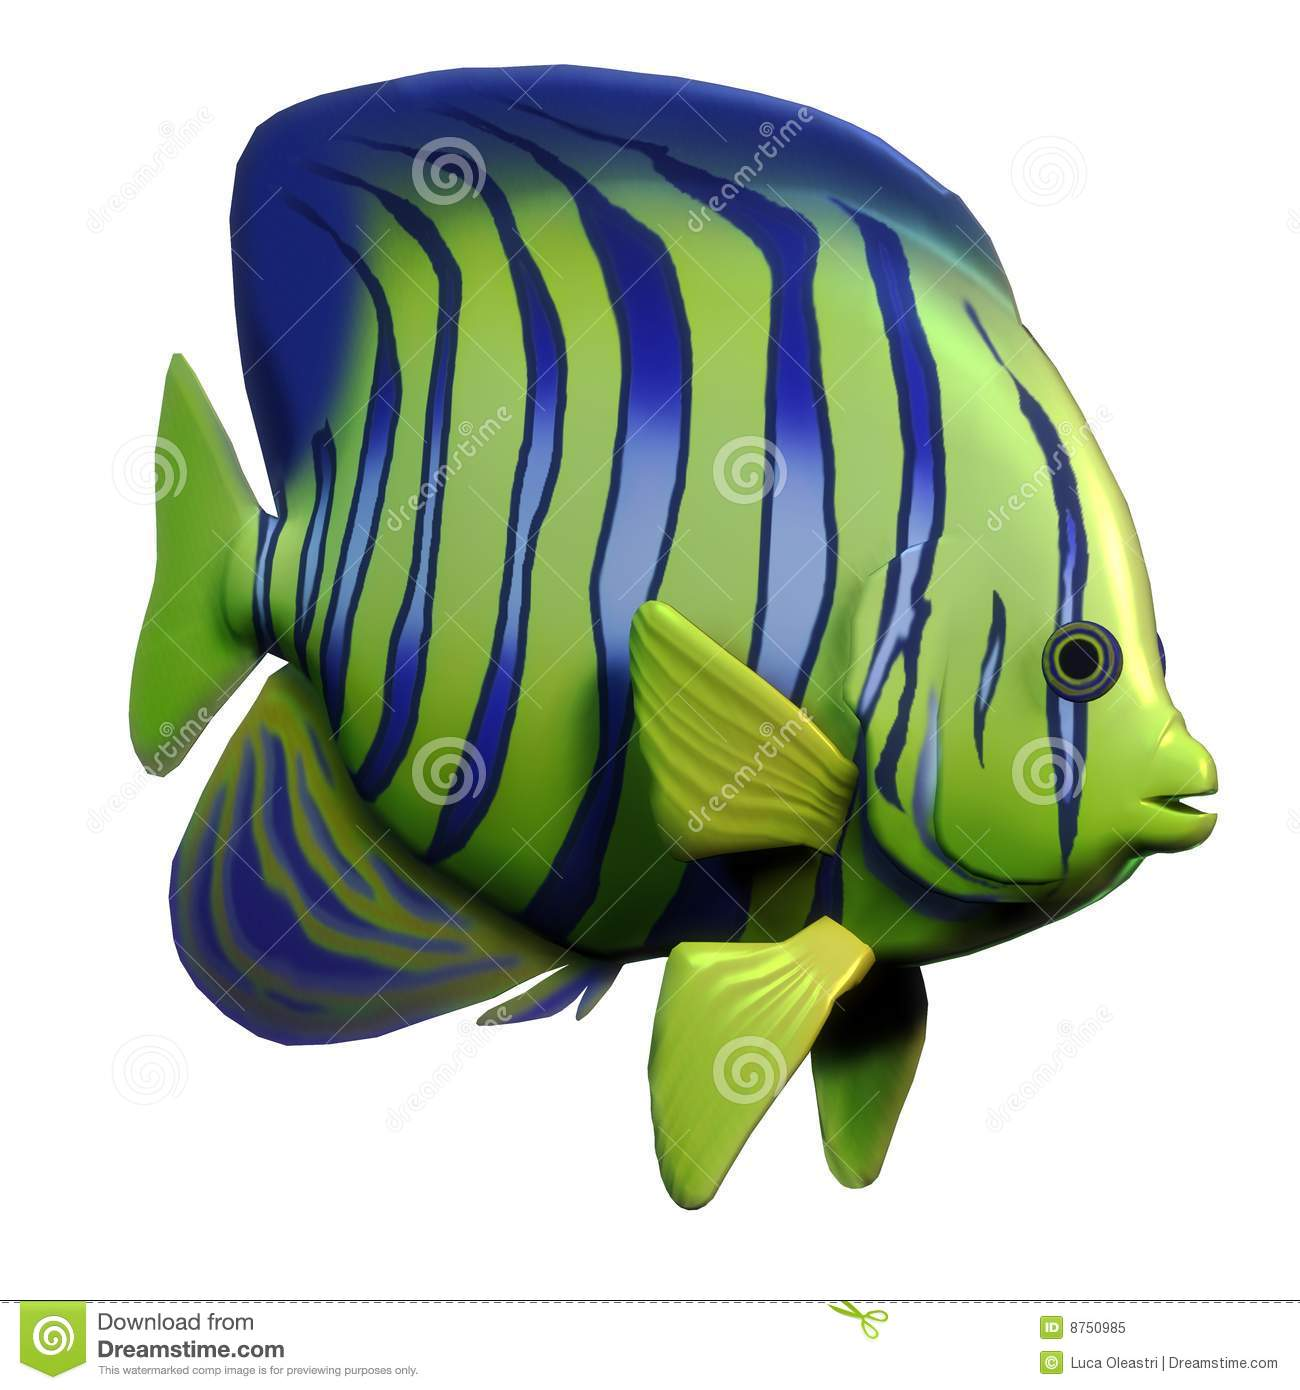 Angelfish clipart #6, Download drawings